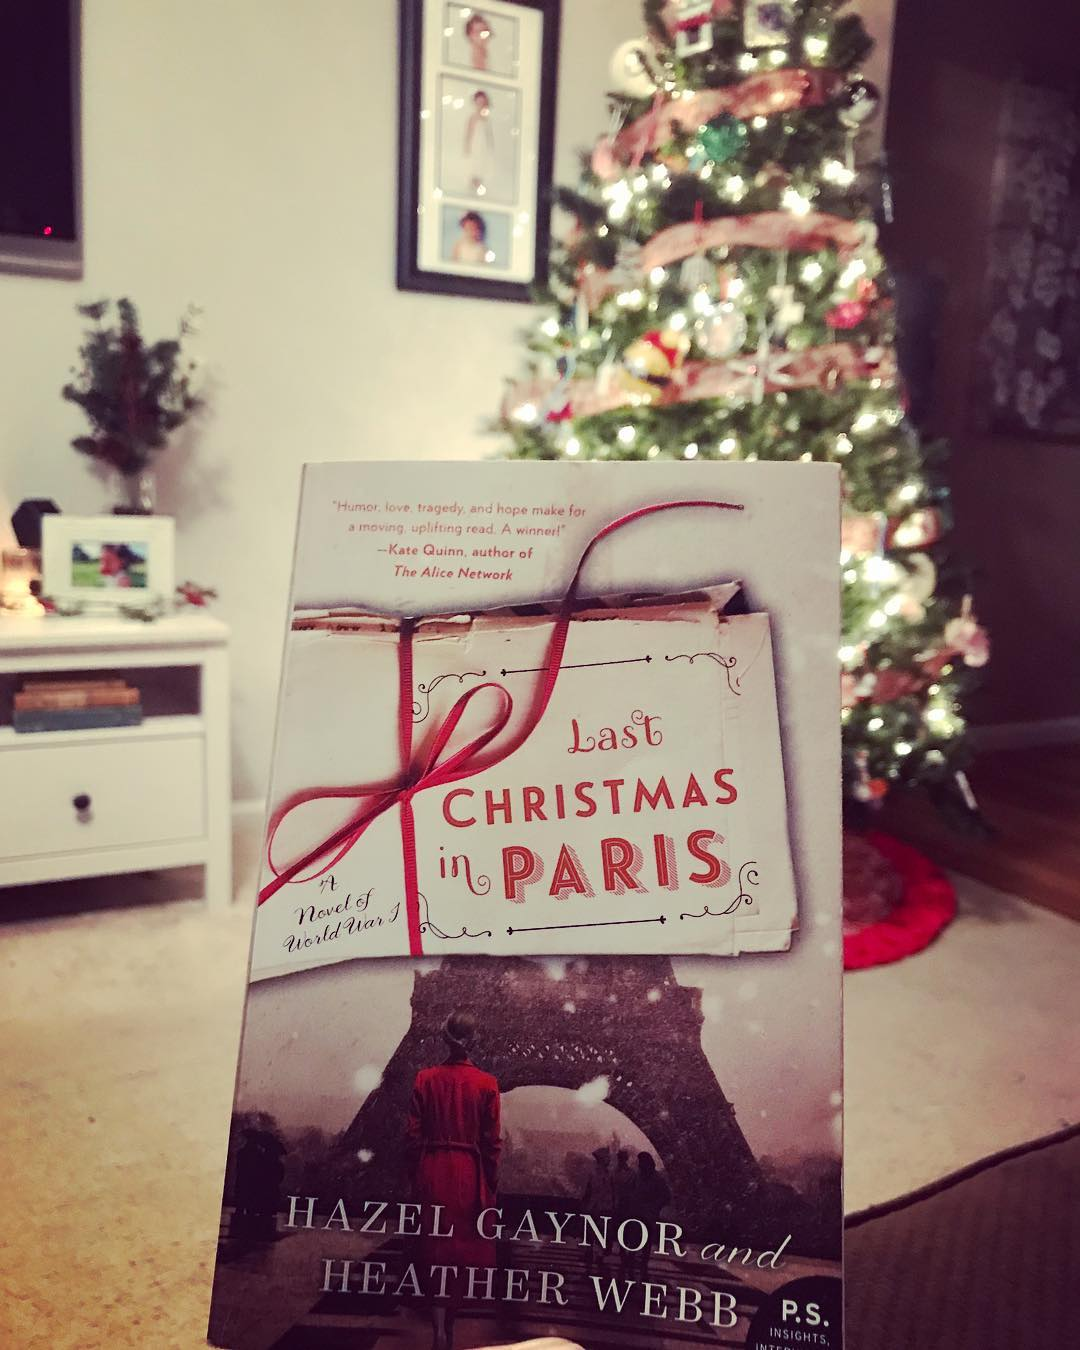 7 Christmas Books to Read When You Celebrate the Holiday Alone Last Christmas in Paris by Hazel Gaynor and Heather Webb